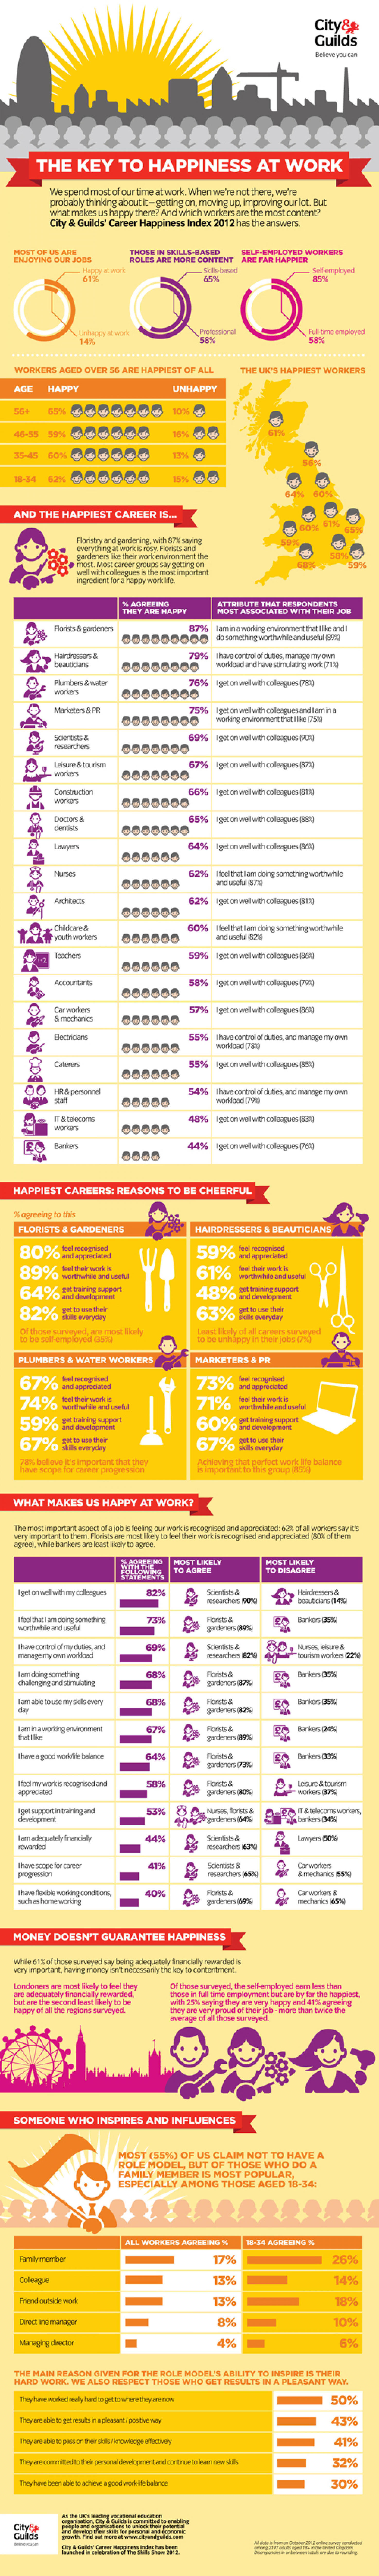 Career Happiness Index 2012 Infographic